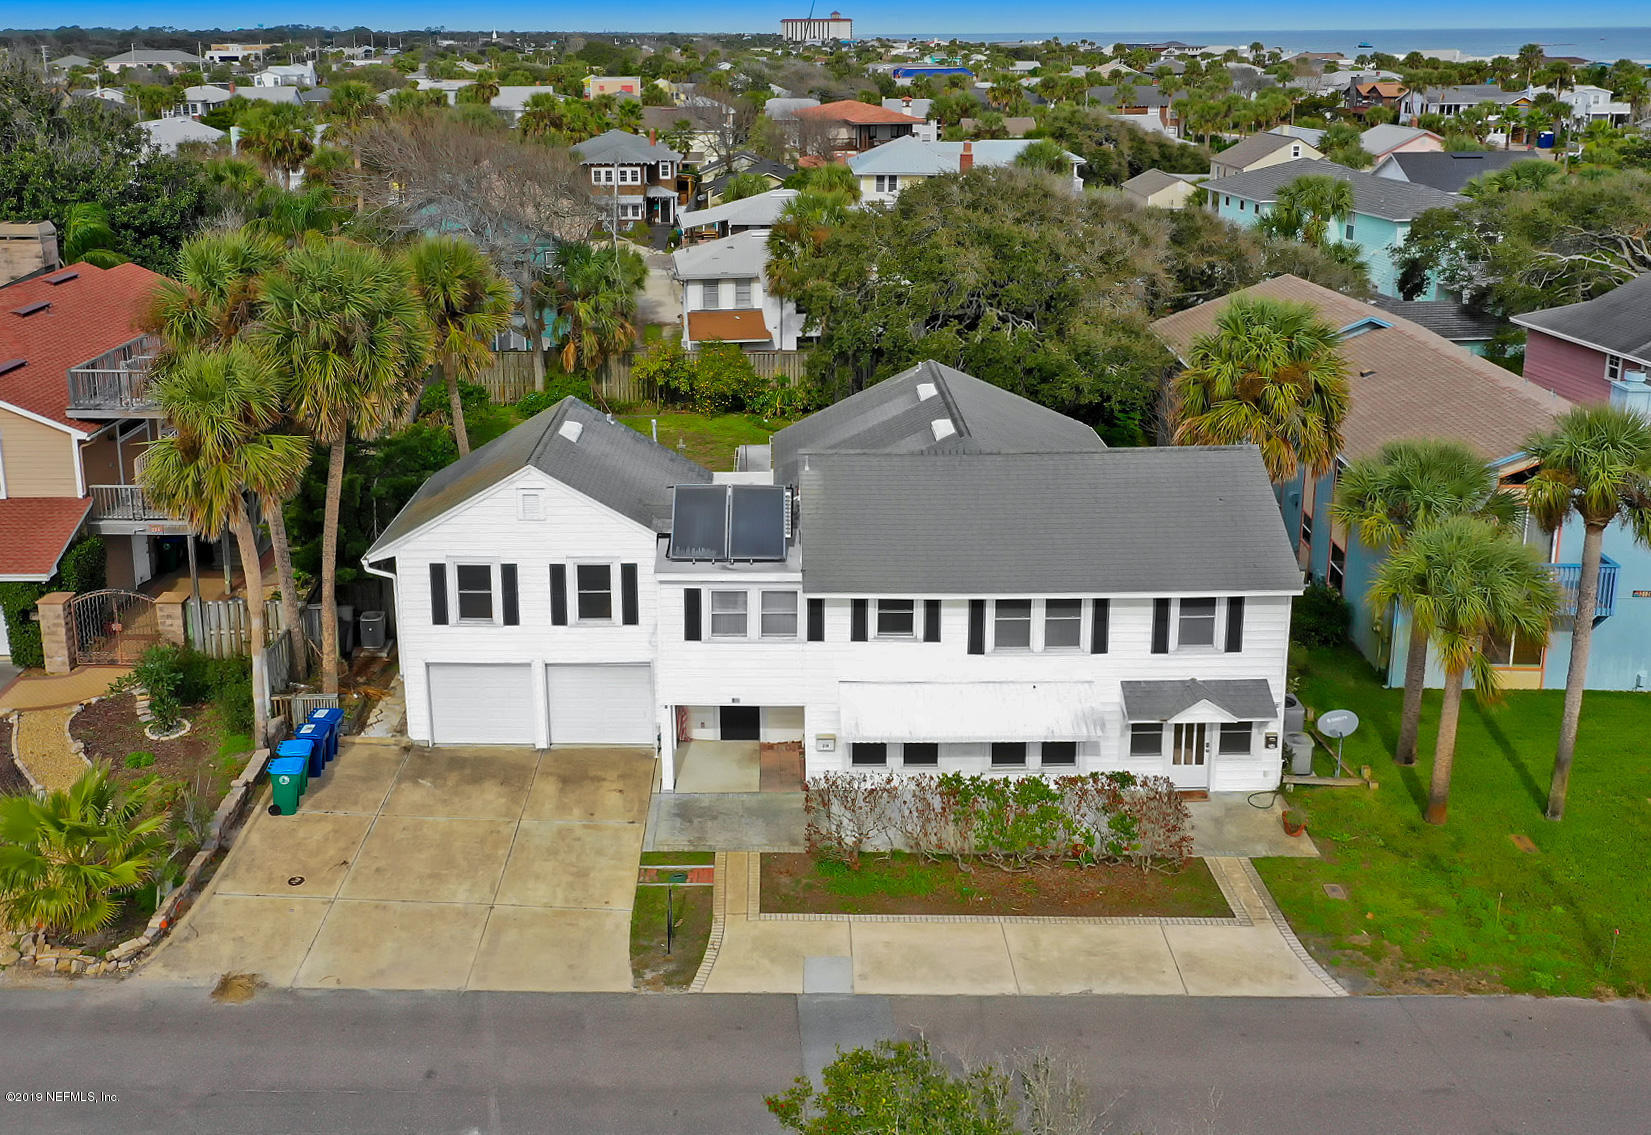 214 BOWLES, NEPTUNE BEACH, FLORIDA 32266, 5 Bedrooms Bedrooms, ,3 BathroomsBathrooms,Residential - single family,For sale,BOWLES,974268